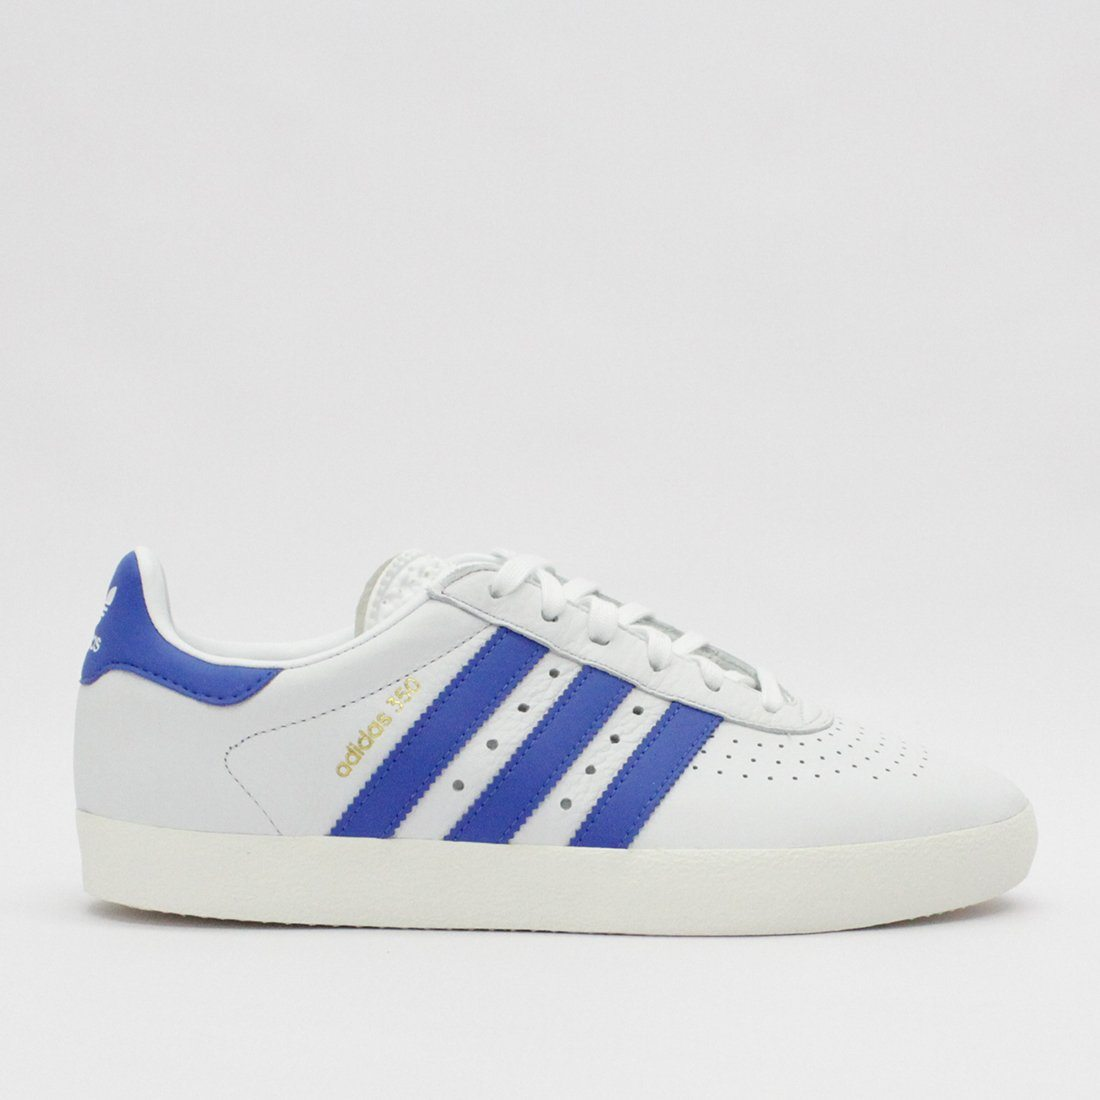 Adidas Originals 350 CQ2772 White